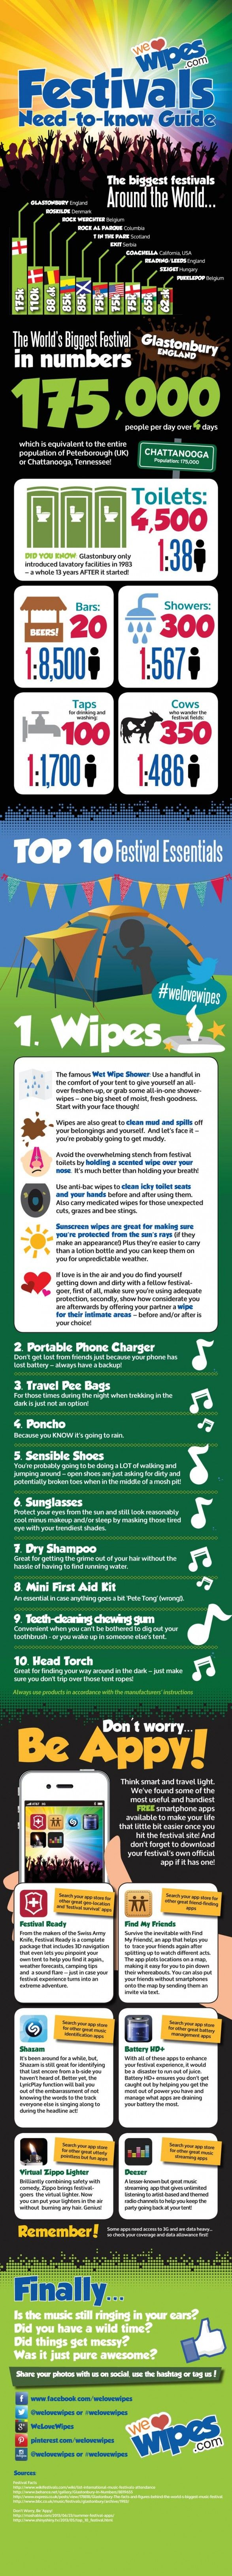 Festival Survival -  need to know guide